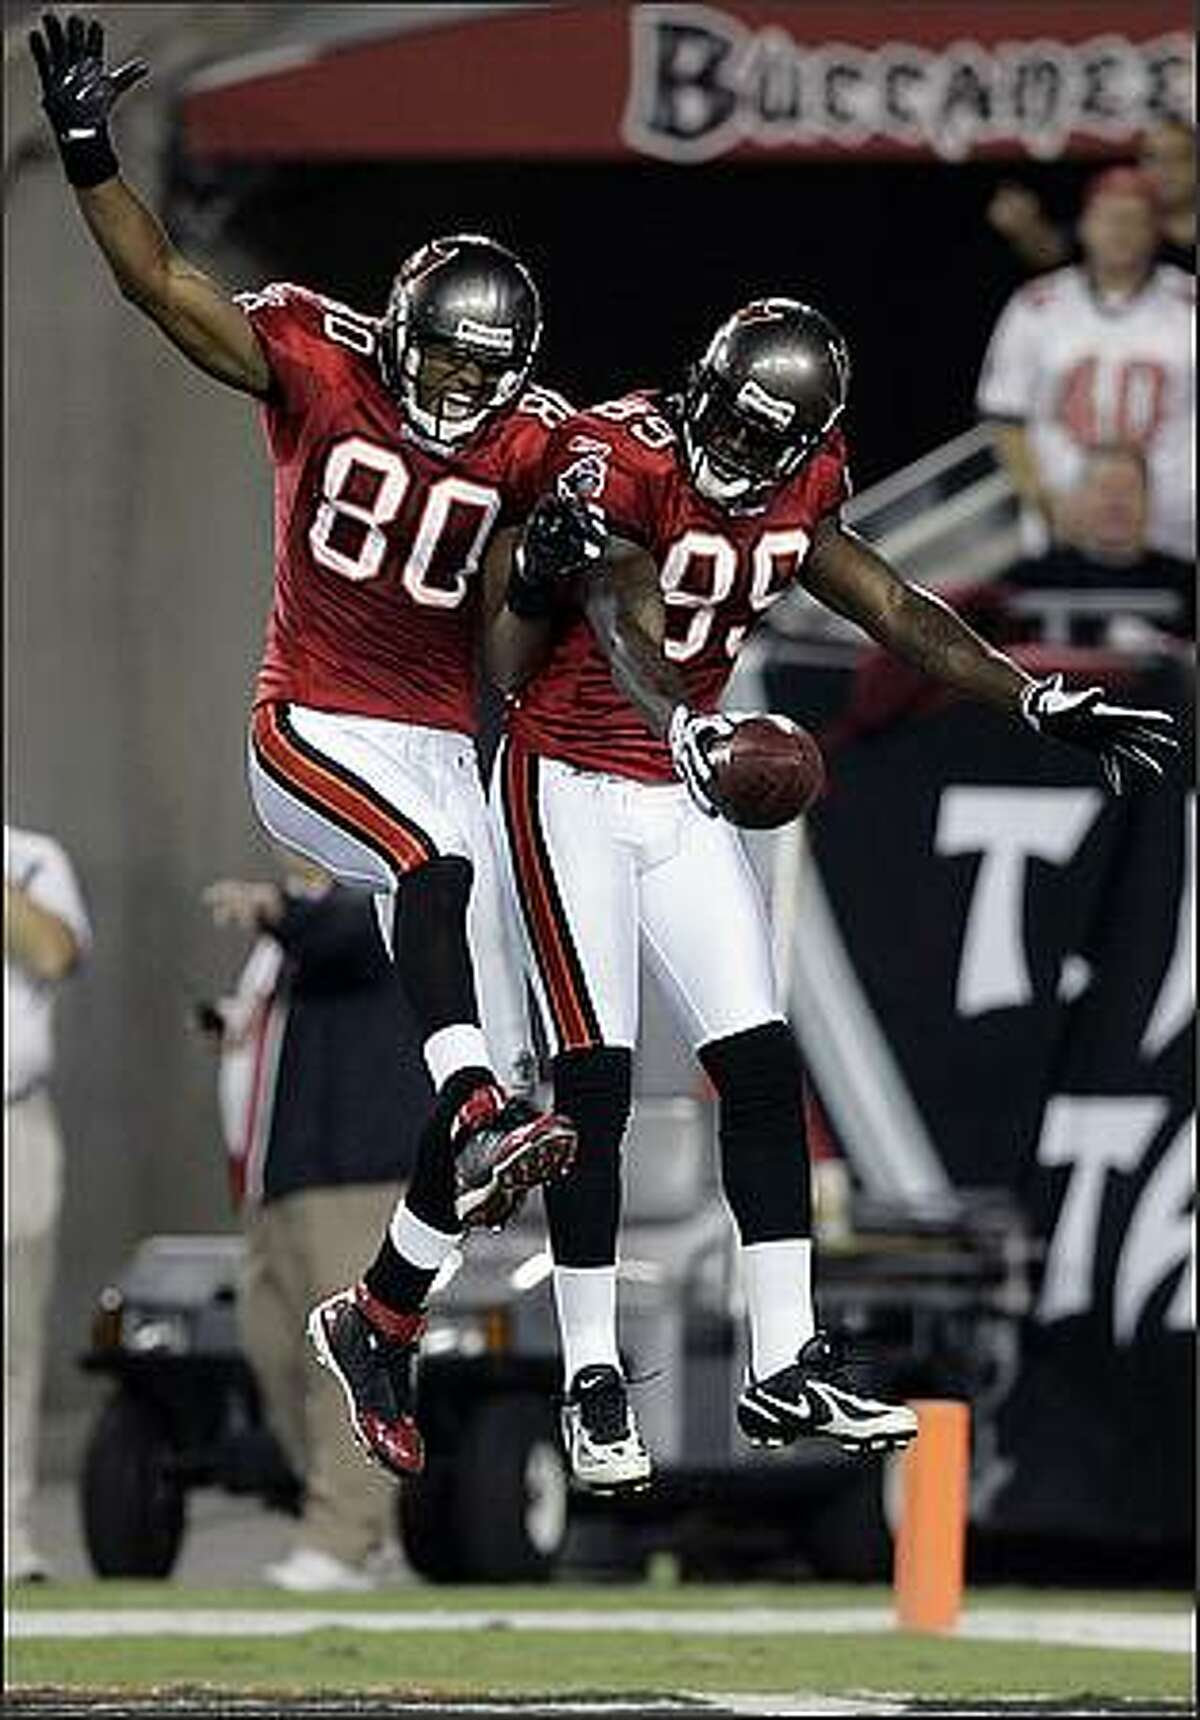 Tampa Bay Buccaneers wide receiver Antonio Bryant, right, celebrates with teammate Tampa Bay Buccaneers wide receiver Michael Clayton after Bryant scored on a 47-yard touchdown pass during the first half against the Seattle Seahawks in Tampa, Fla.